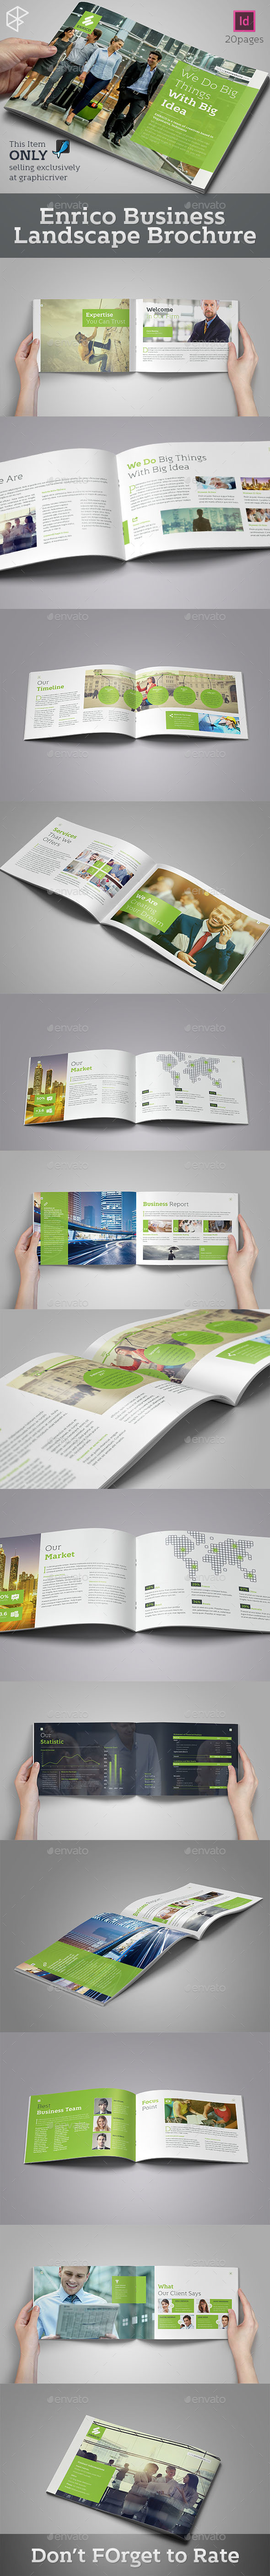 Enrico Business Landscape Brochure